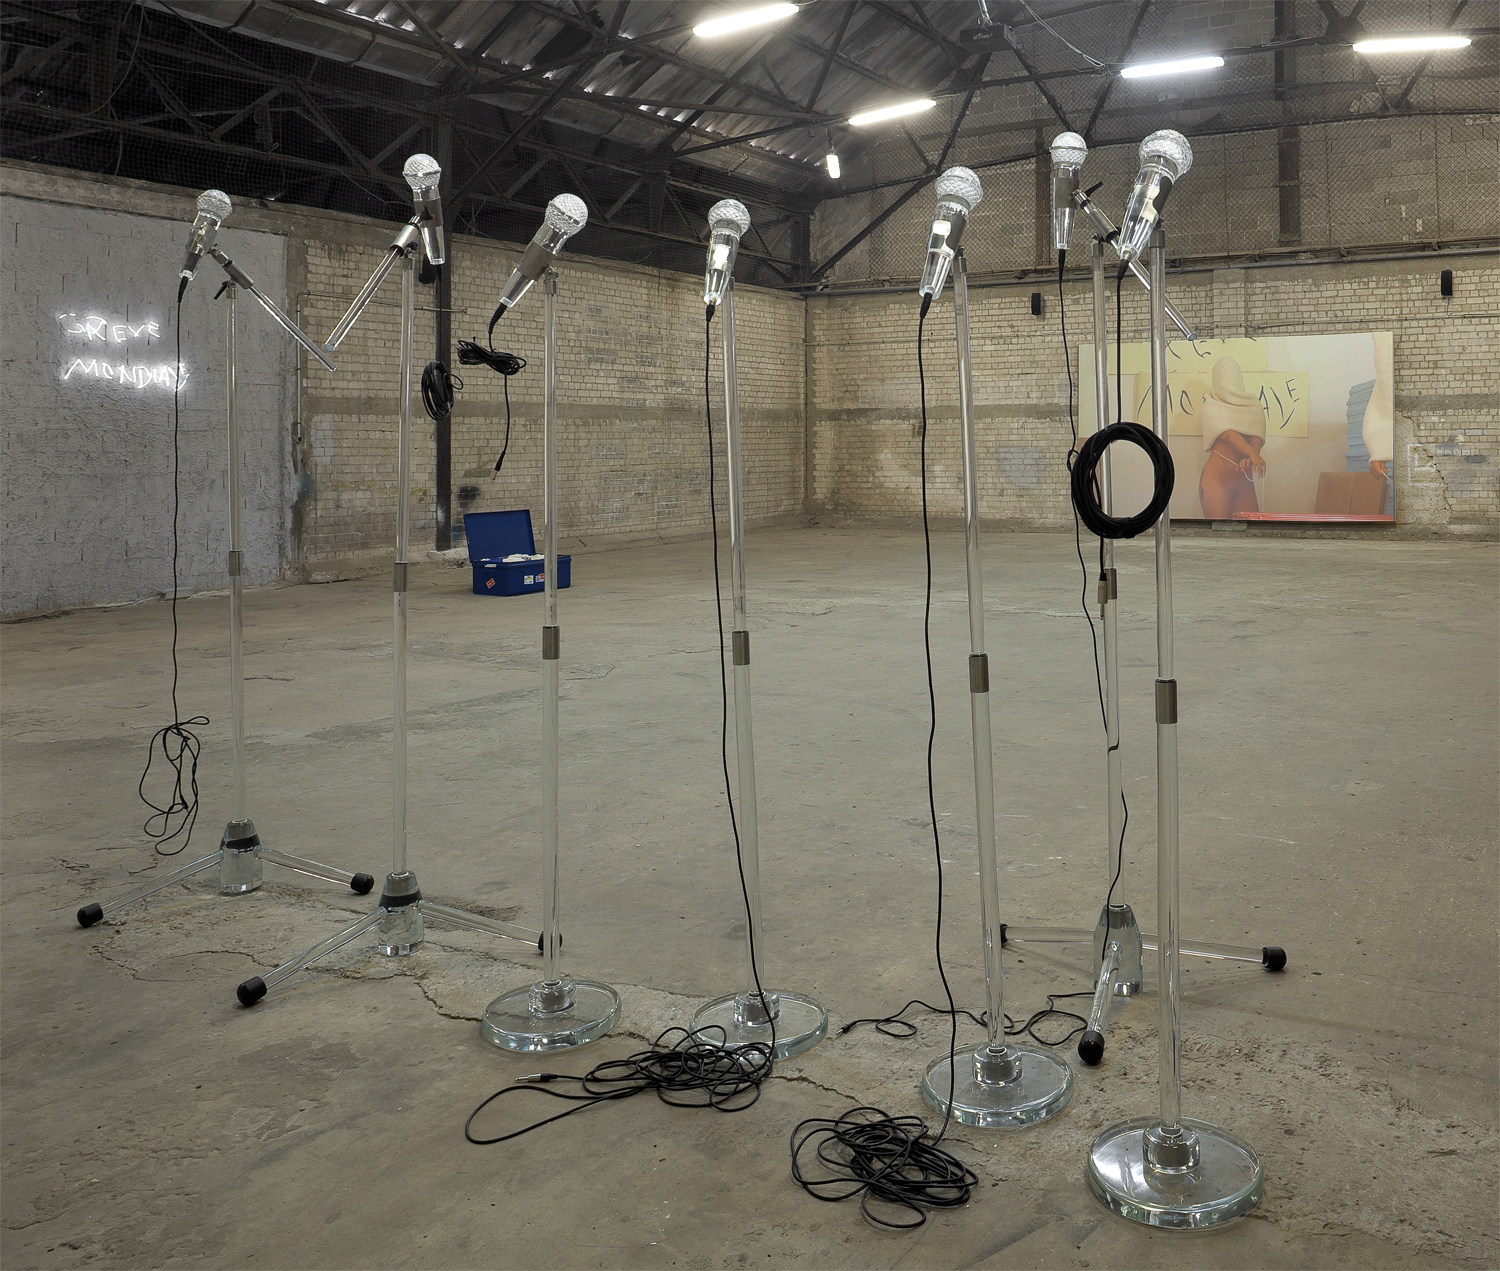 Fatalité 2011 Adel Abdessemed  Installation with 7 hand-blown Murano glass microphones, variable dimensions, exhibition view, NU, 2011, Dvir Gallery, Tel Aviv Courtesy of Dvir Gallery, Tel-Aviv and Brussels